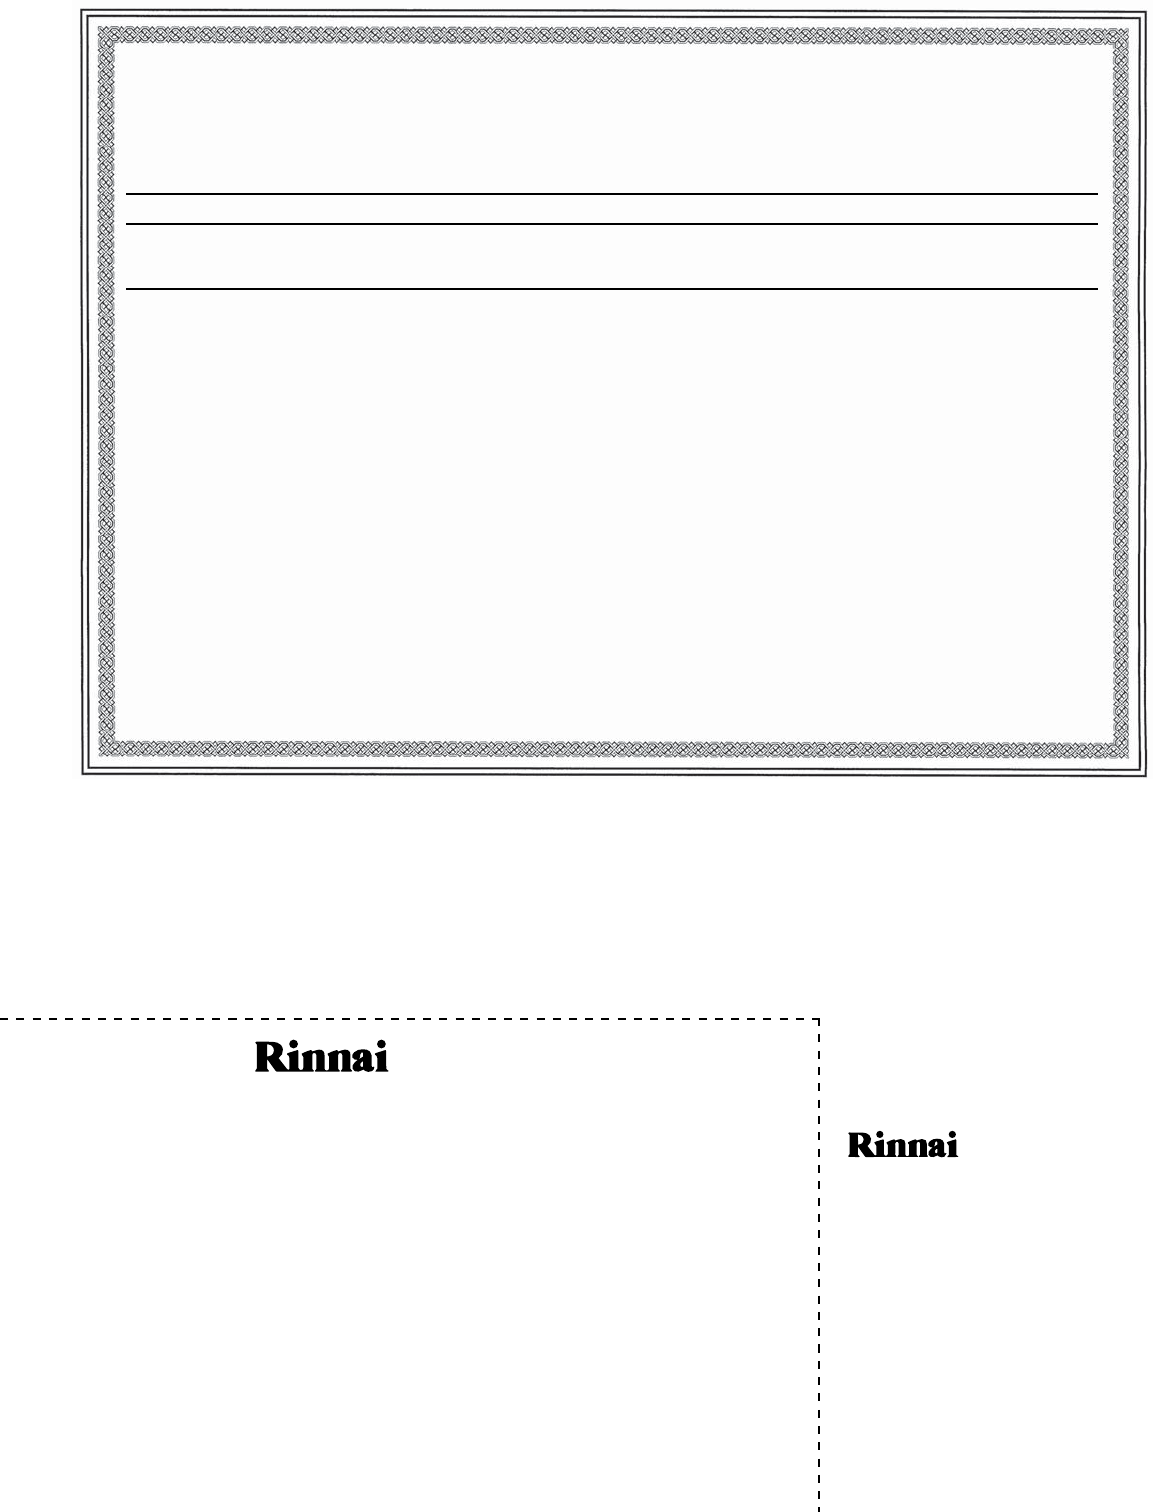 Rinnai Rce 229a Users Manual Rev2 2002pmd Schematics America Corporation Warrants The Products Described In This Warranty Including Any Parts And Components Thereof To Be Free From